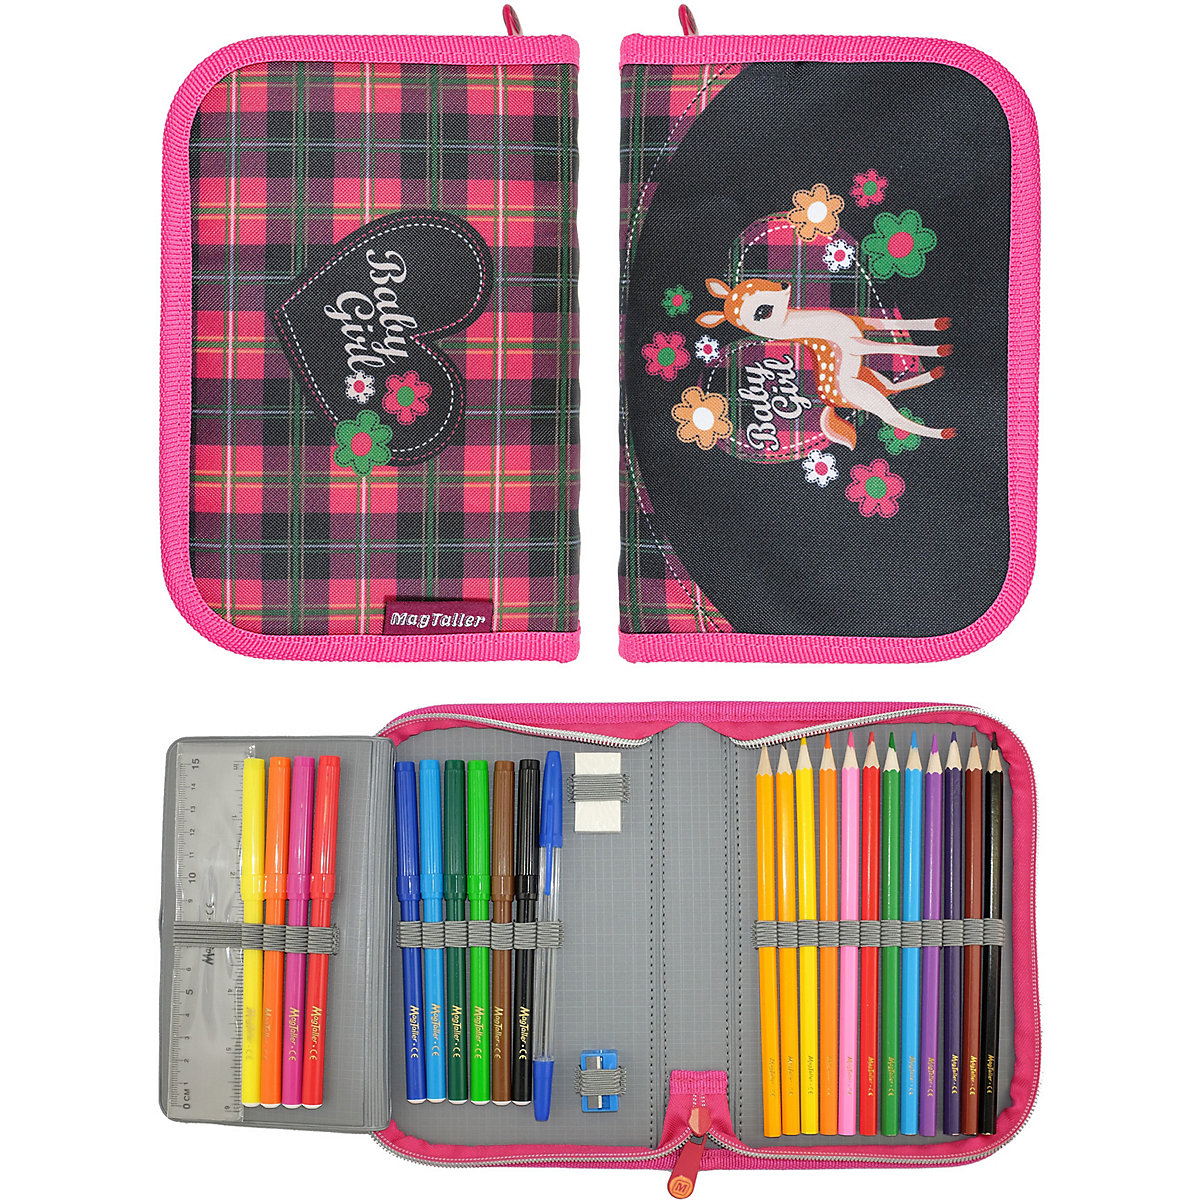 Фото - Pencil Cases MAGTALLER 11154896 school supplies stationery pencil cases for girls and boys drawing deli creative cute pencil box student stationery pencil bag portable pencil cases cosmetic makeup pen bag storage school supply